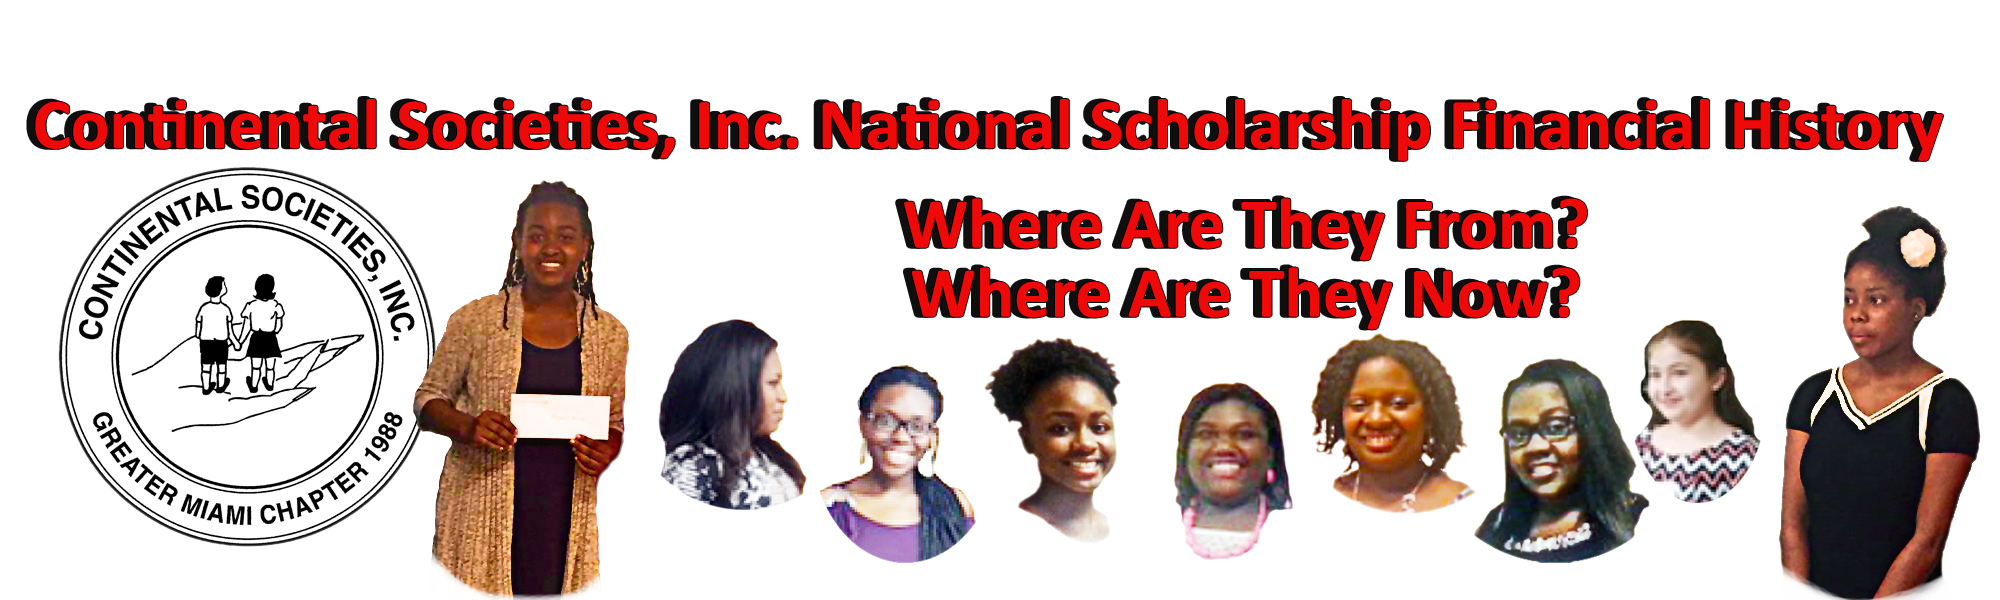 Continental Societies National Scholarship Financial History - Powered by Barrett Information Technologies Inc.